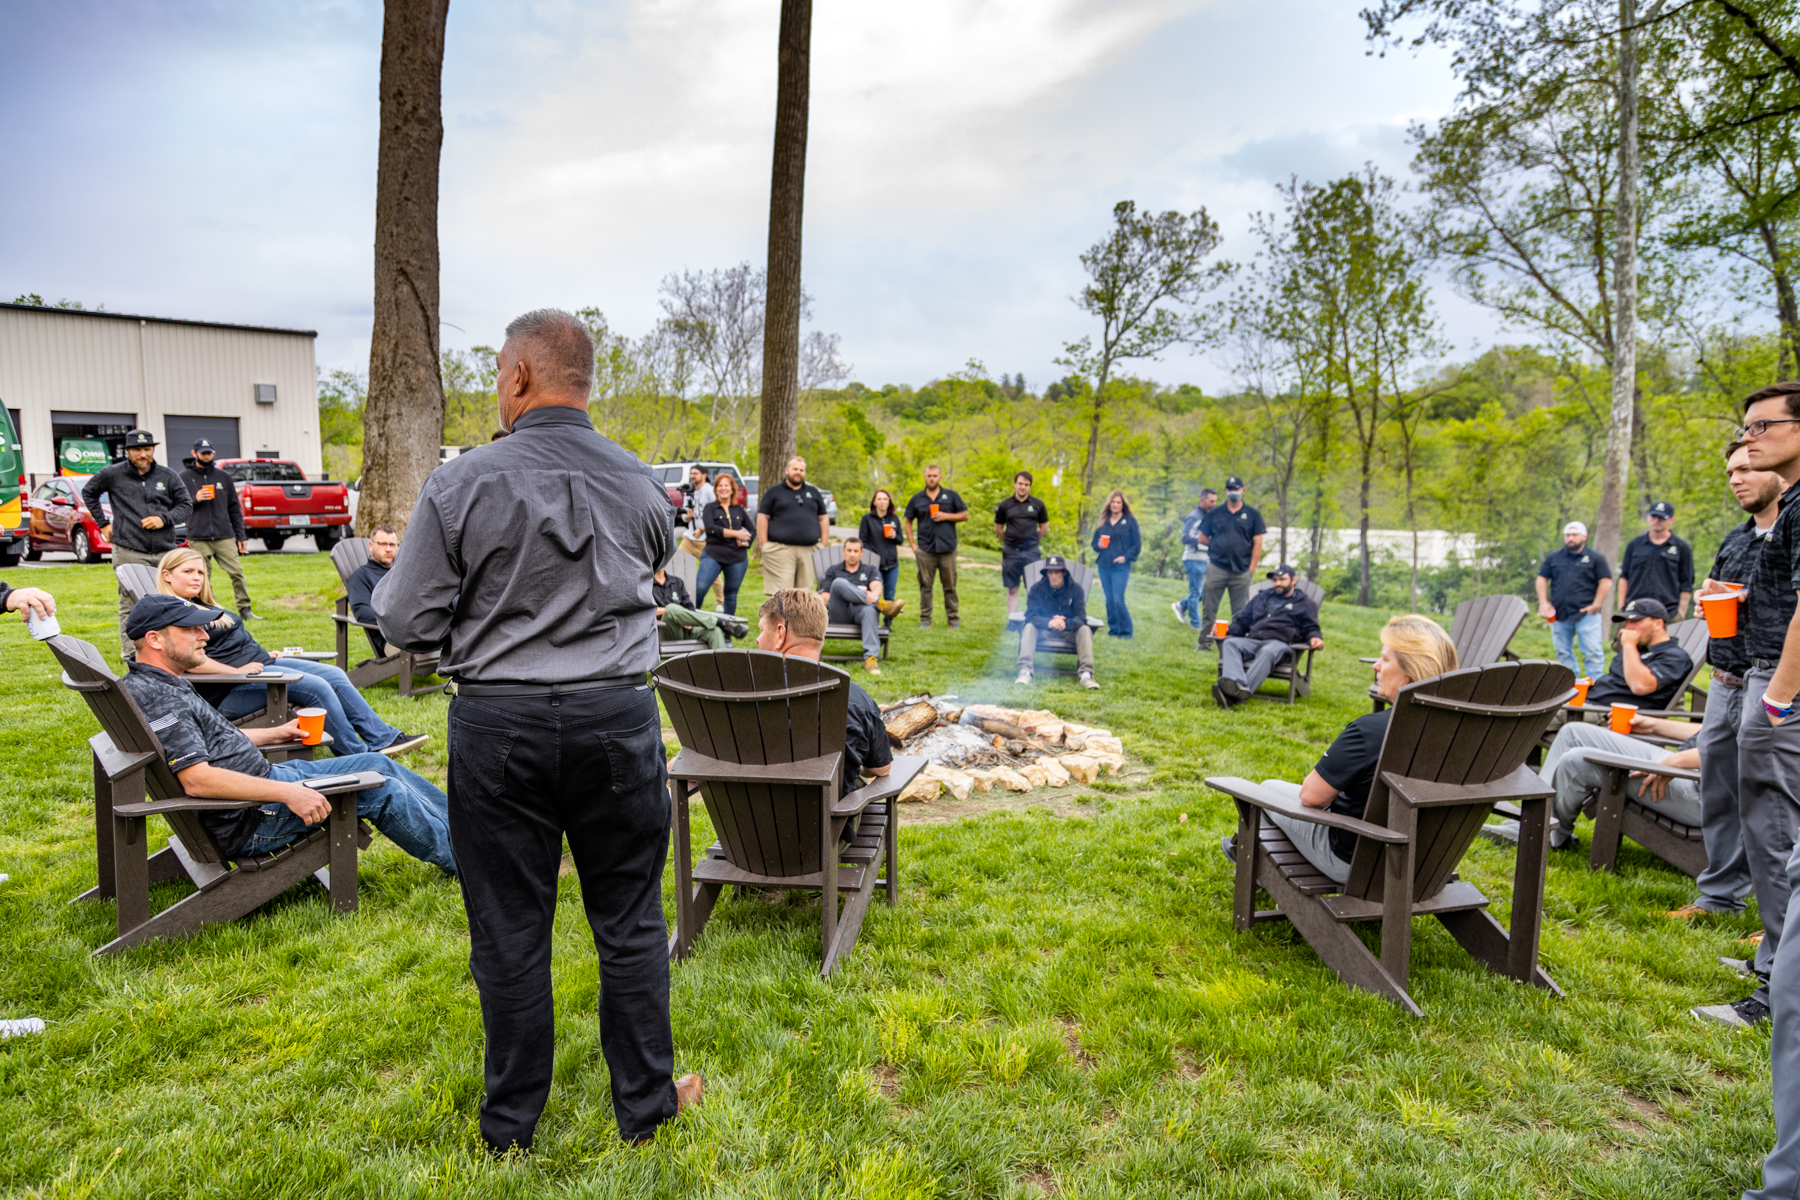 Oasis outdoor greenspace, firepit and hangout area